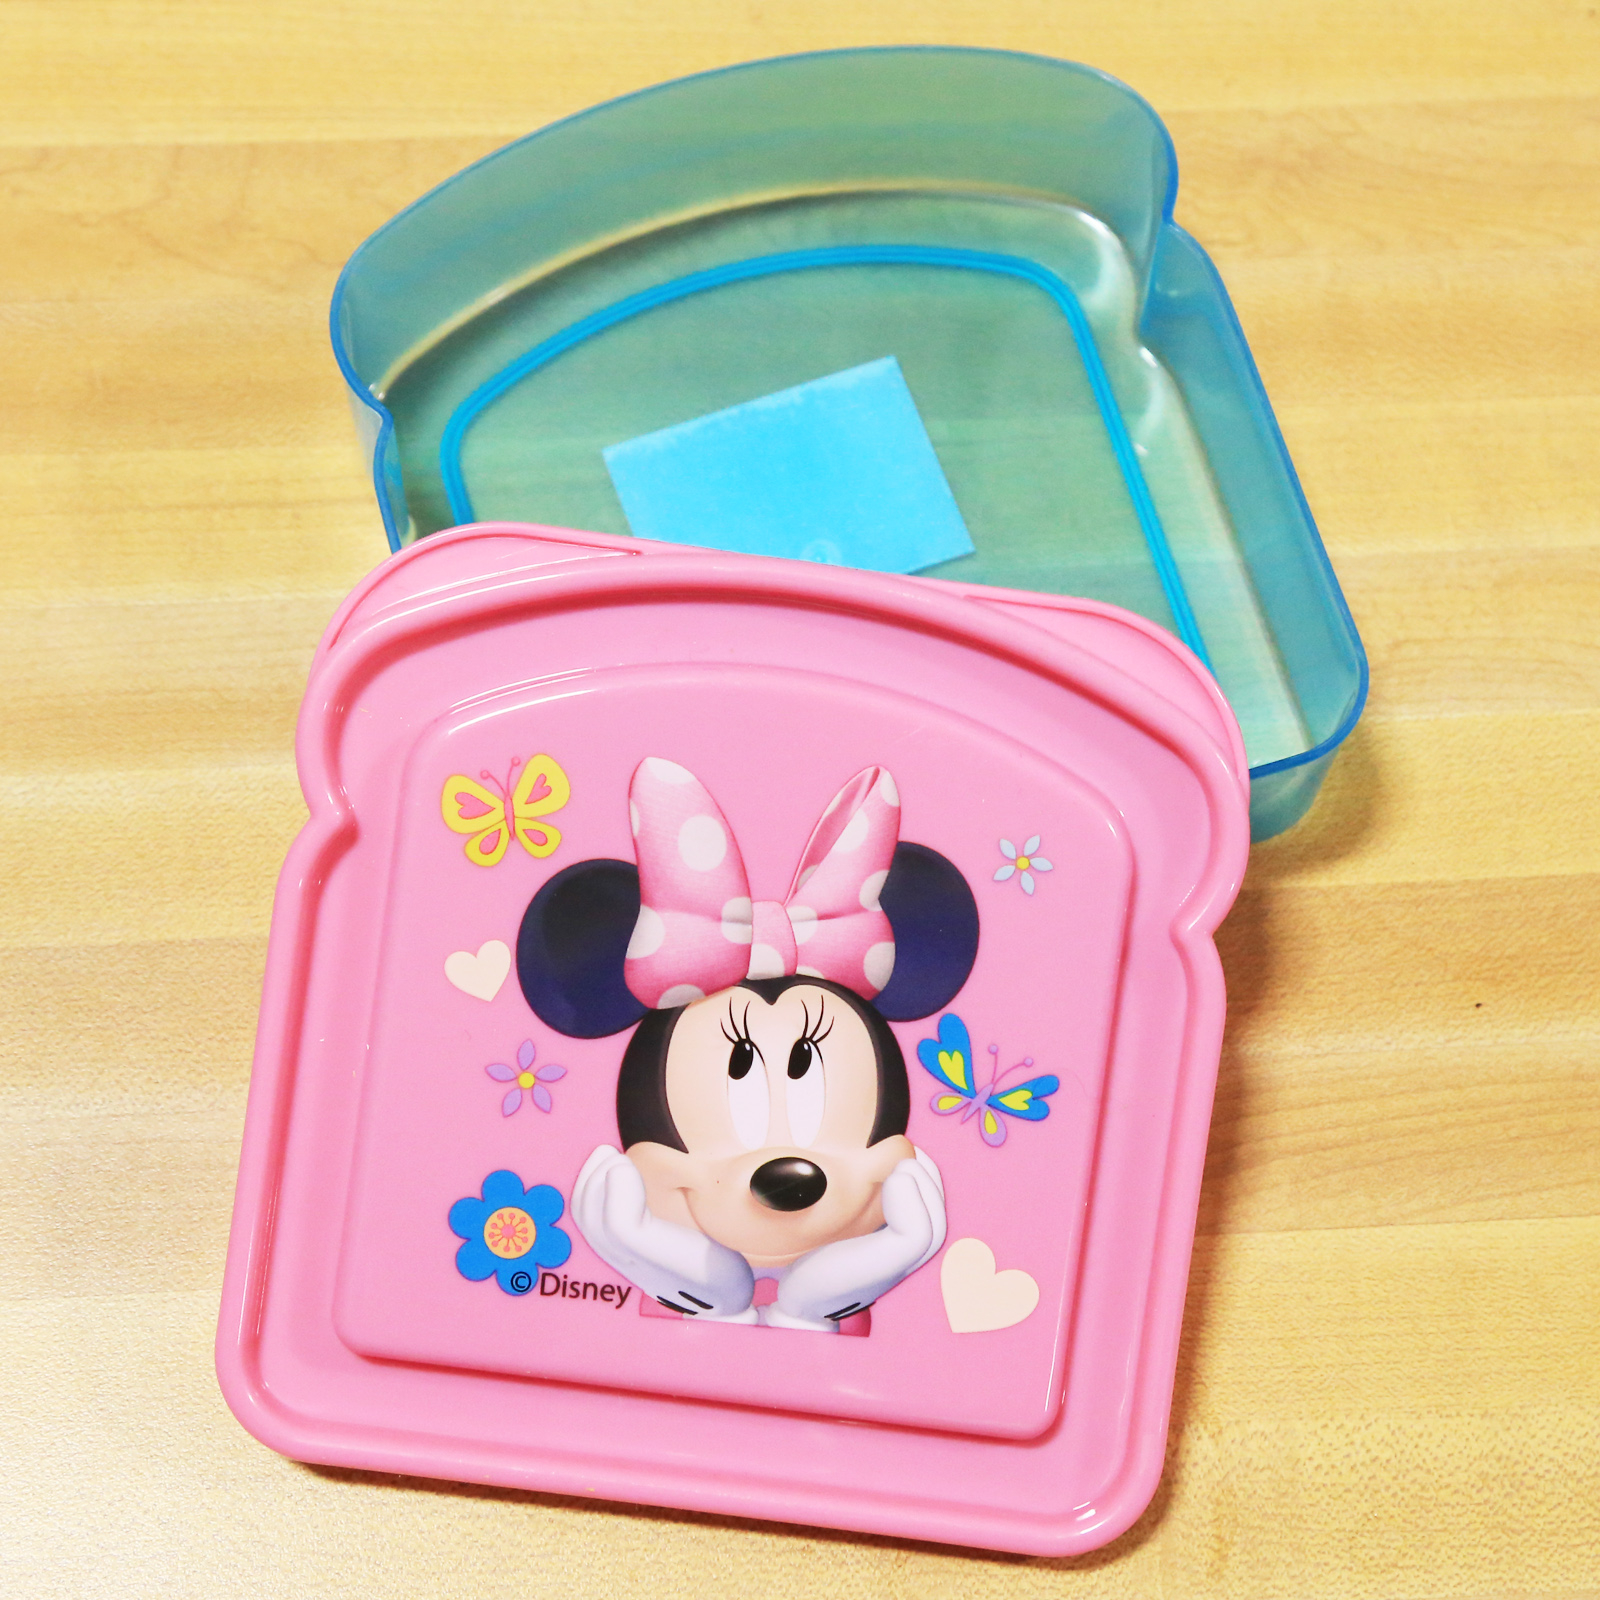 Disney Minnie Mouse Girls Sandwich Container Bread Lunch Box for School Travel